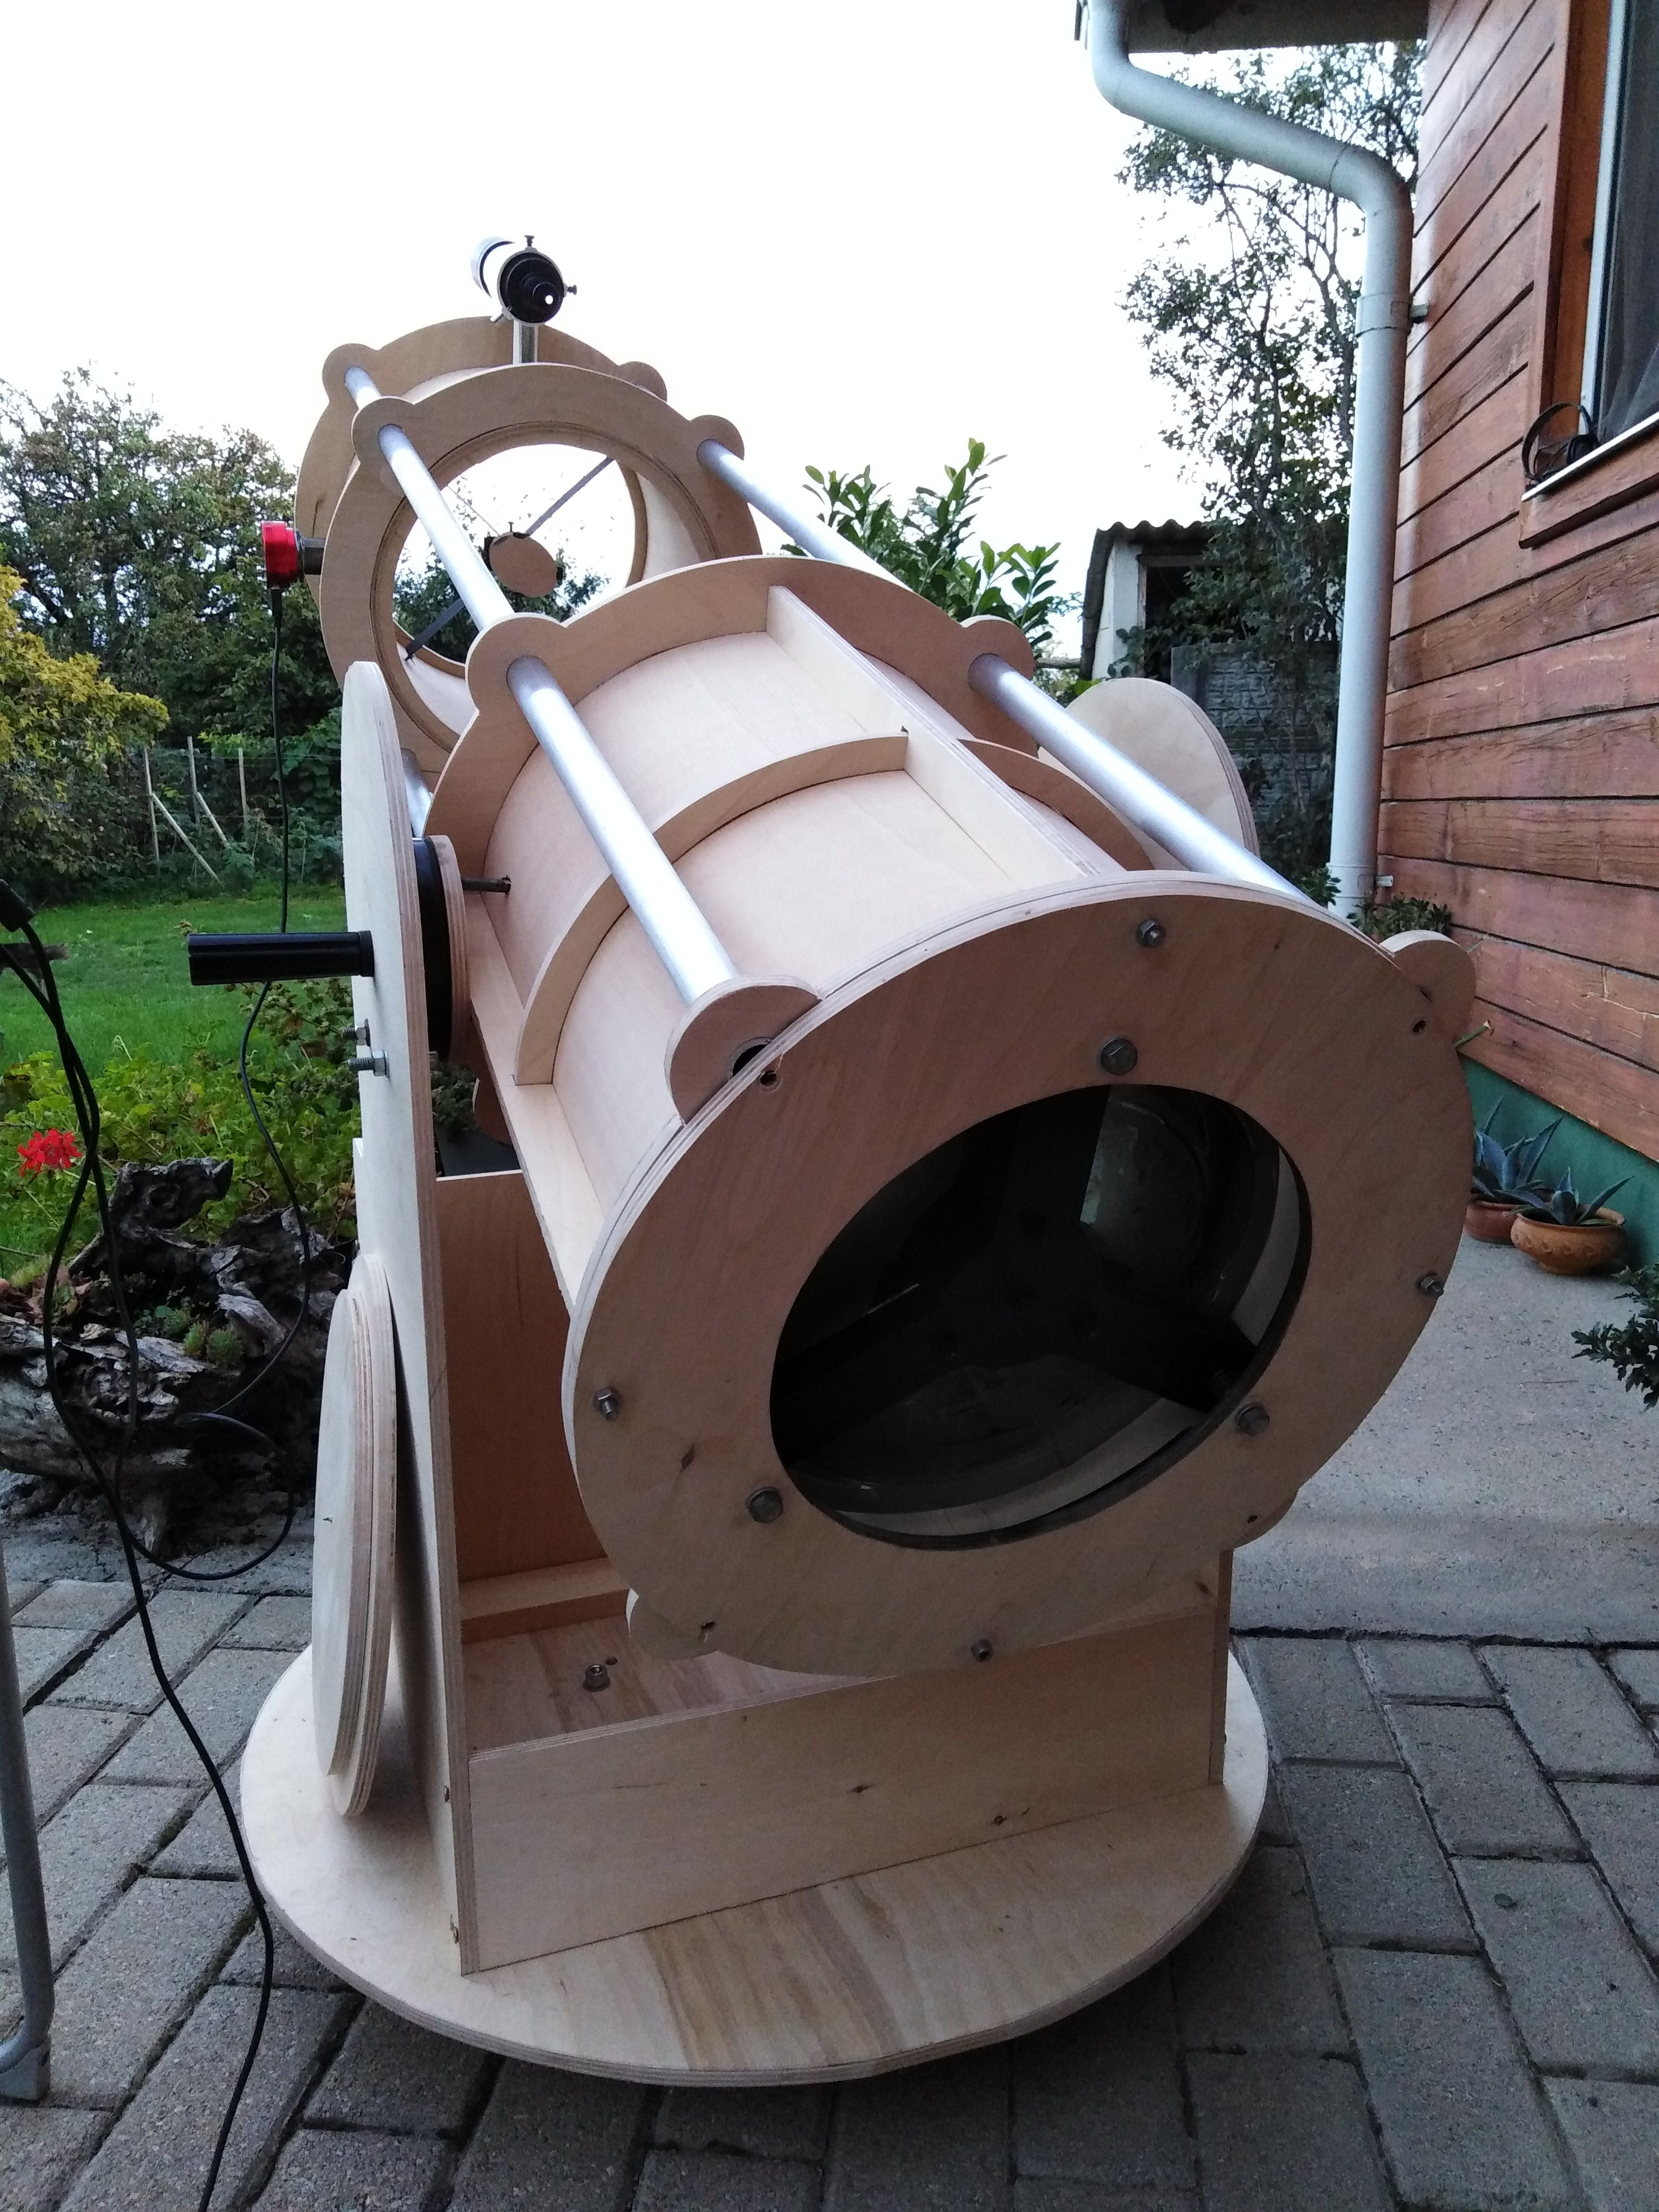 homemade dobsonian telescope with